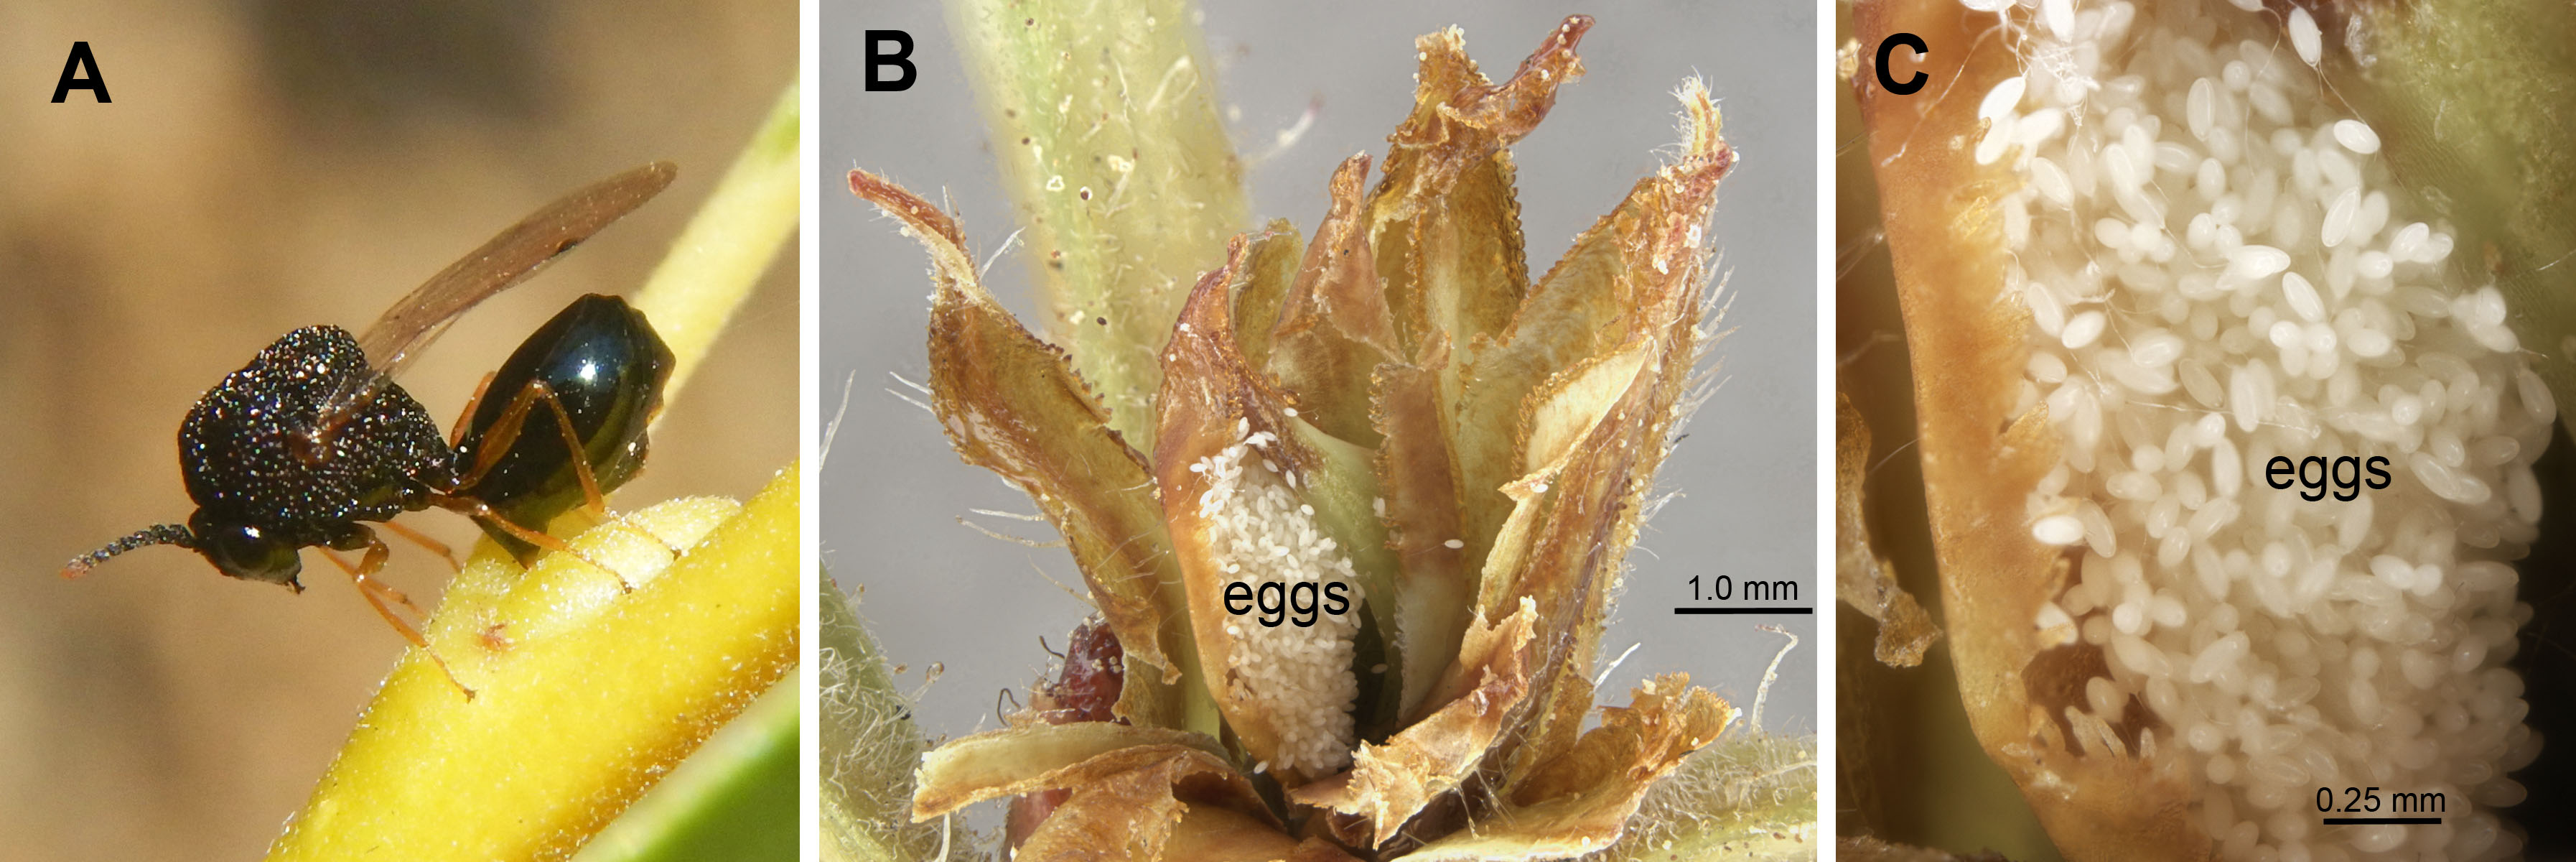 Pseudochalcura gibbosa: A, ovipositing into Salix; B&C, eggs in Rhododendron bud